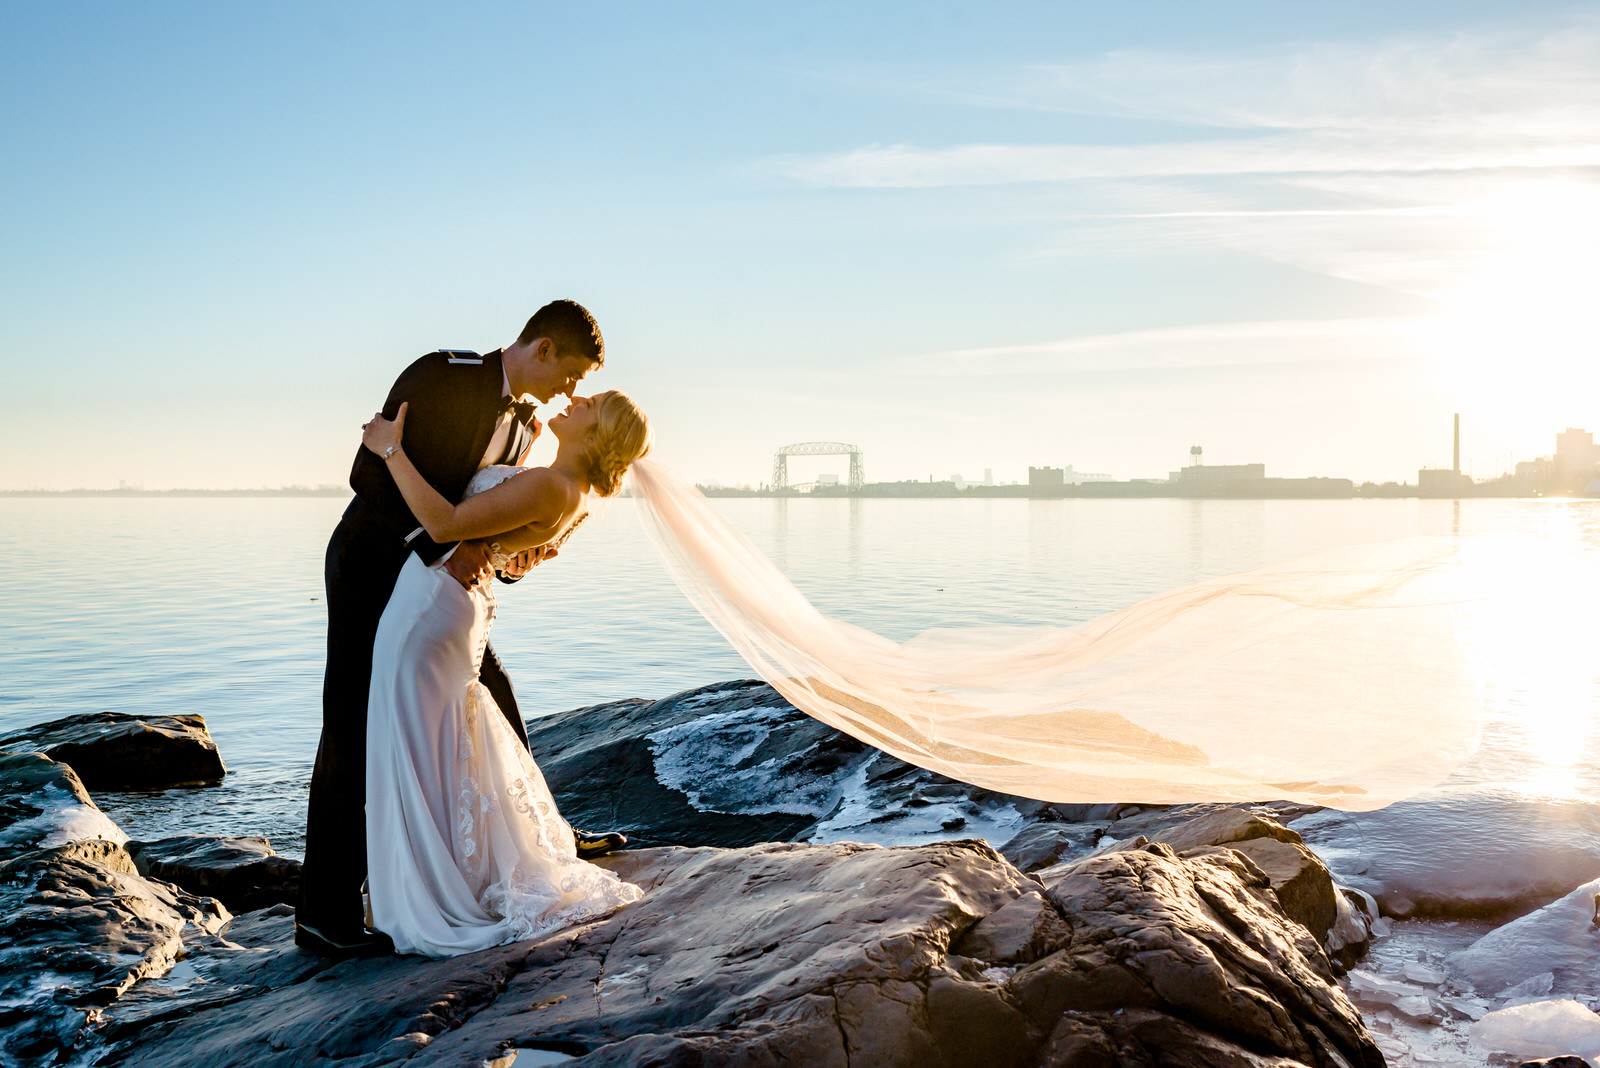 Duluth MN Wedding Photographer - Bride and Groom on Shoreline at Sunset - Romantic Wedding Photos